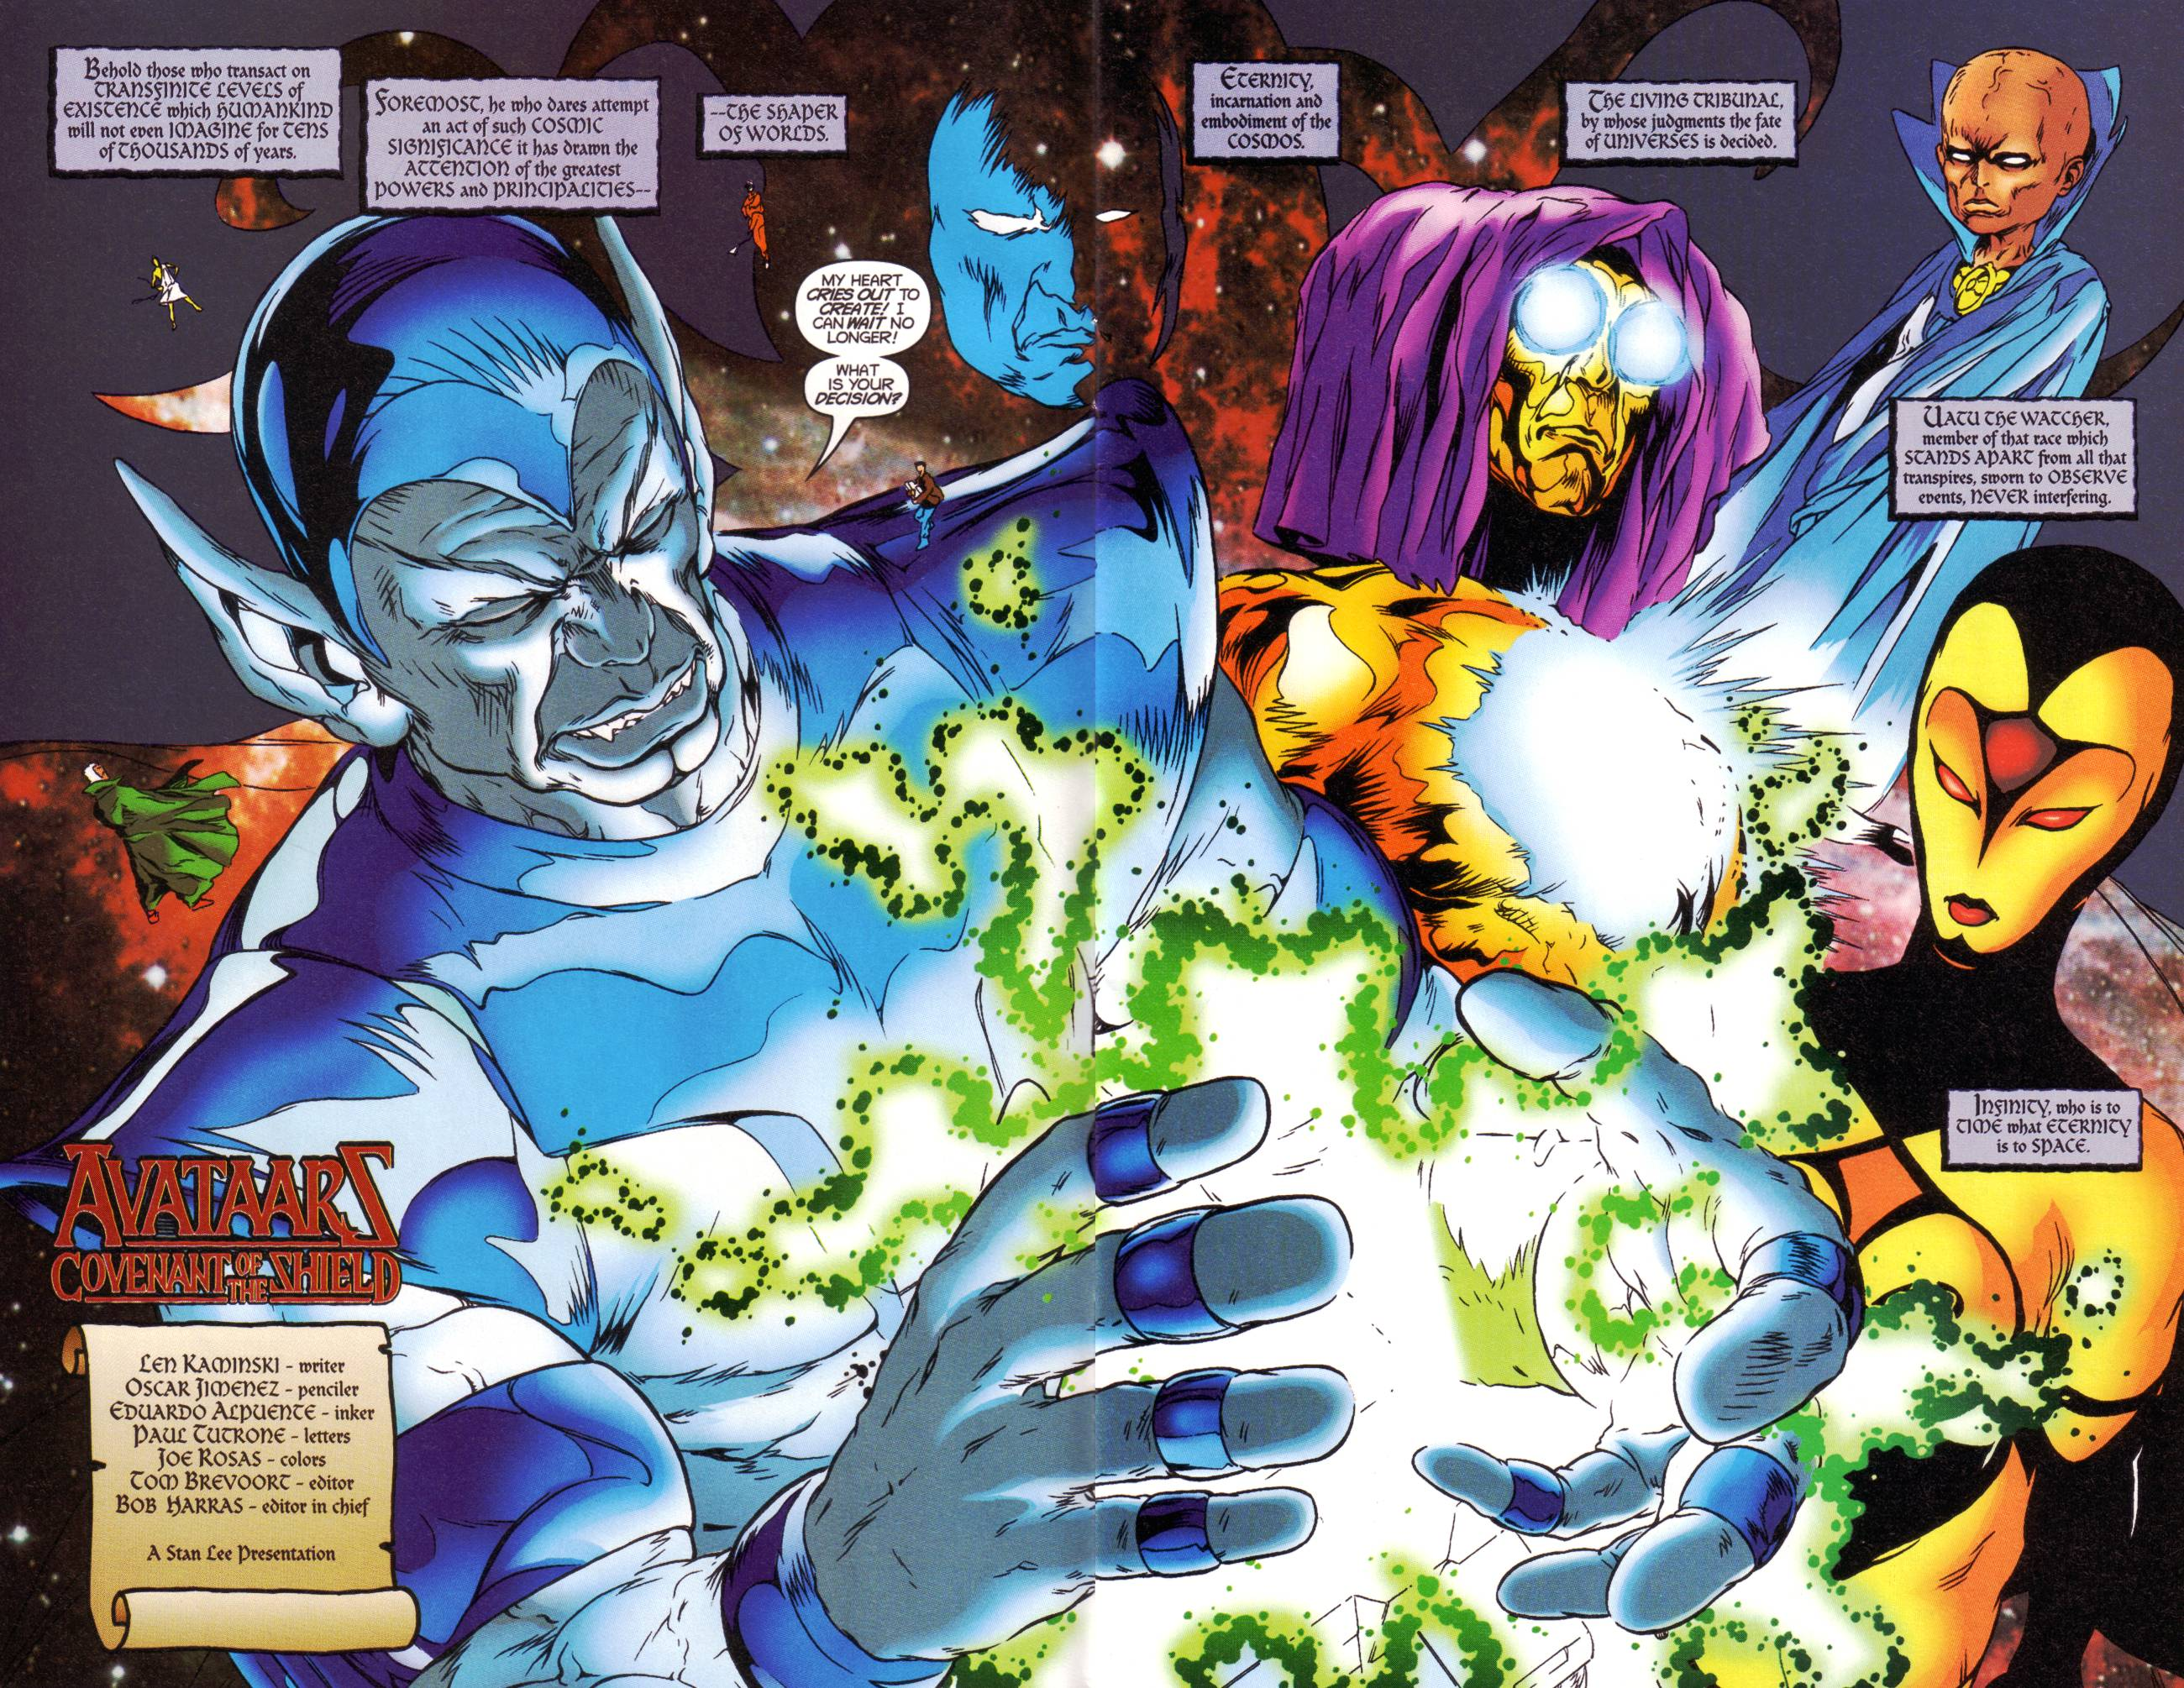 Read online Avataars: Covenant of the Shield comic -  Issue #1 - 3